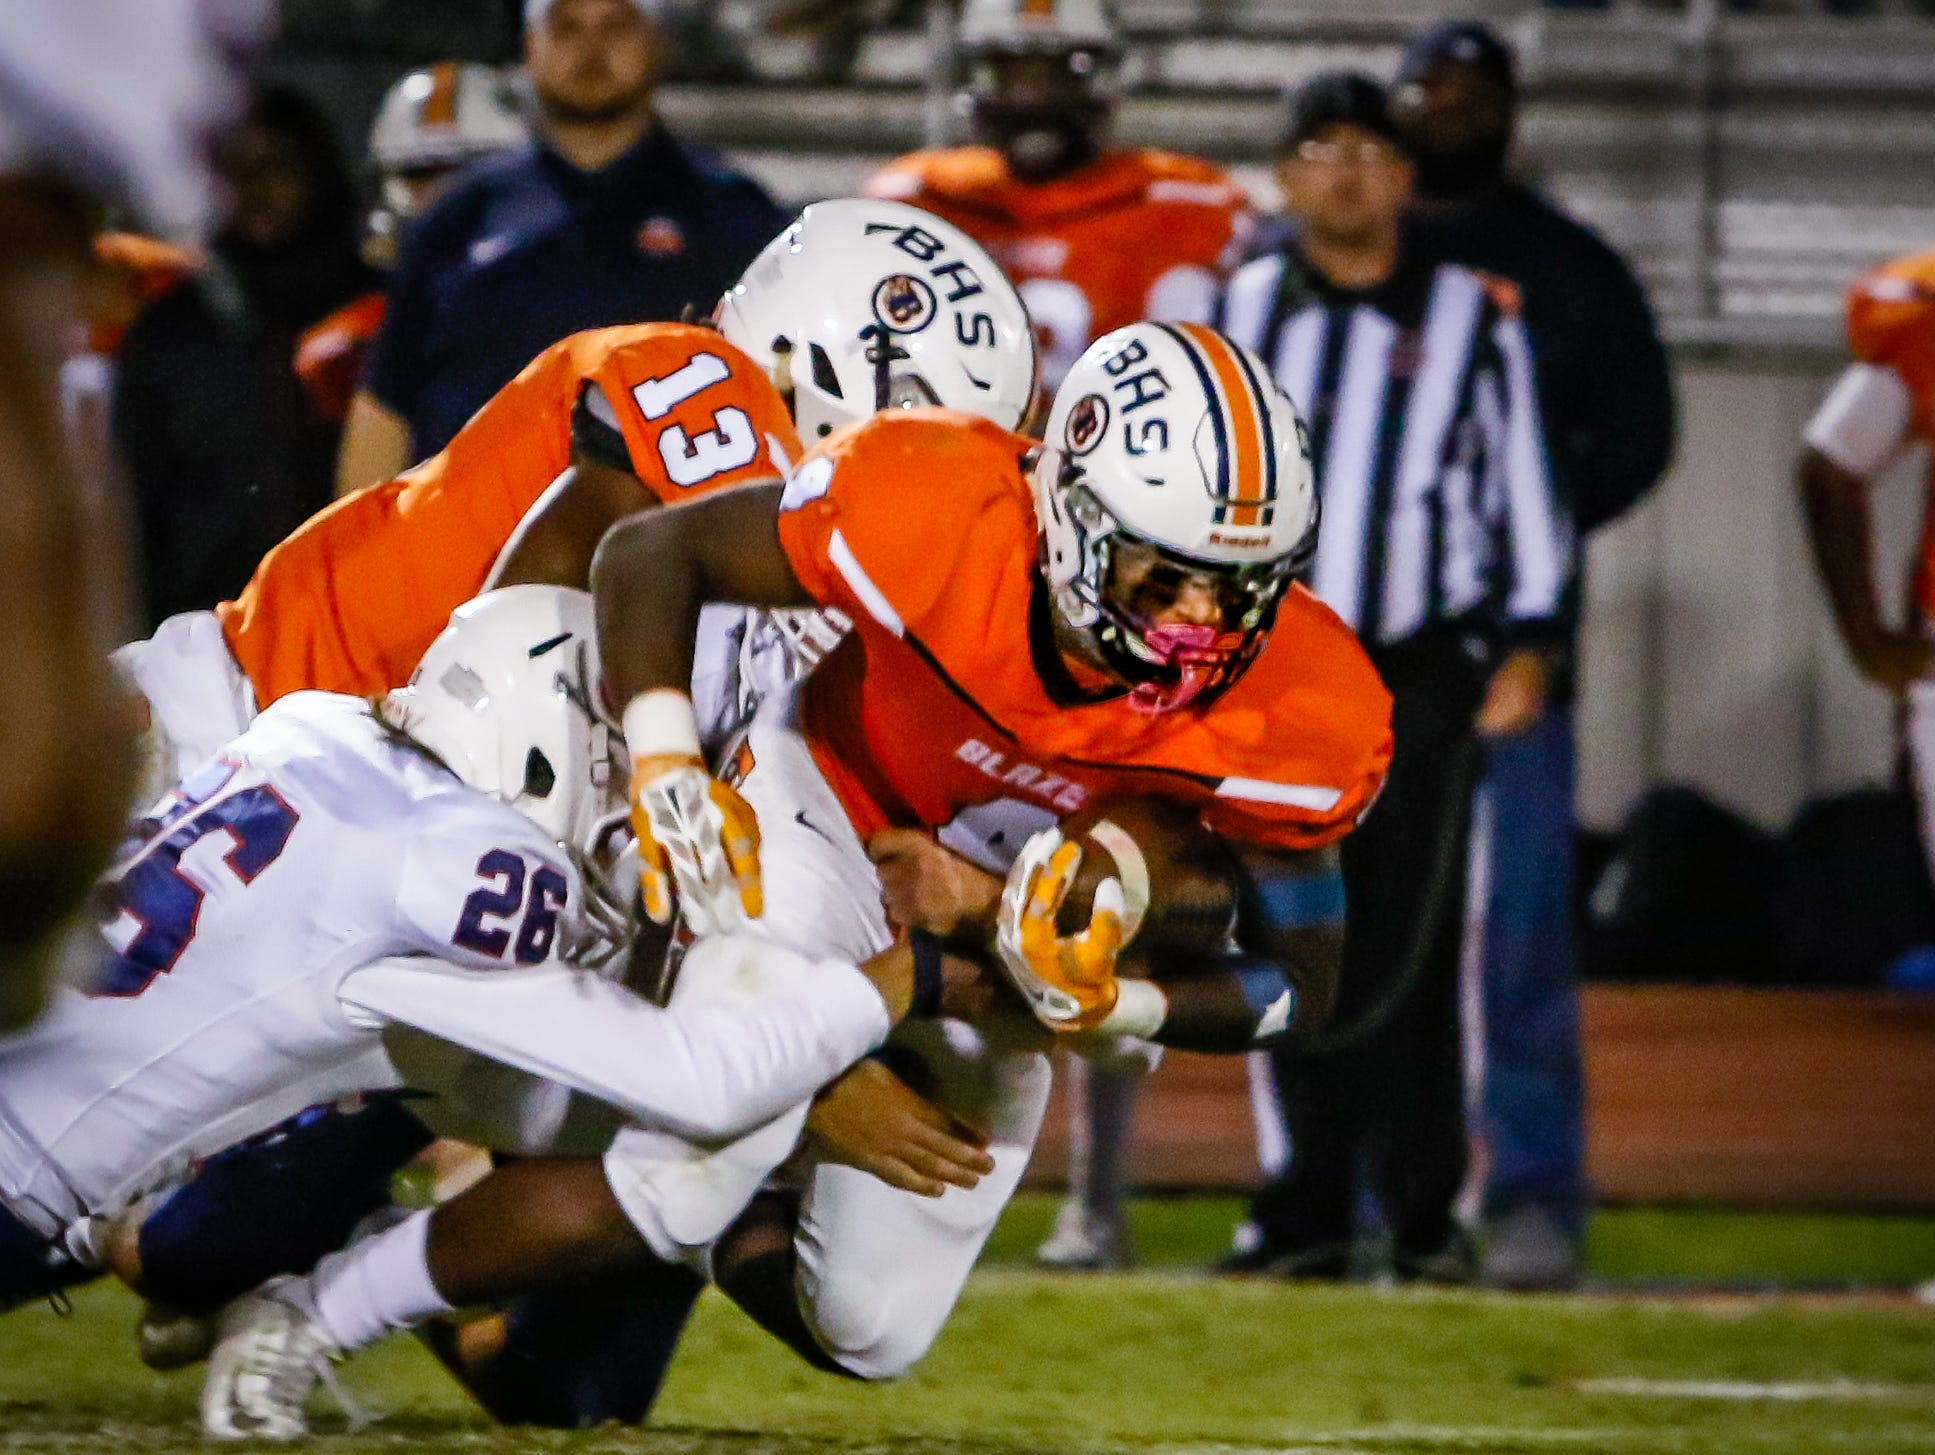 Jordan Brown carries the ball for Blackman during Friday's game against Cookeville.